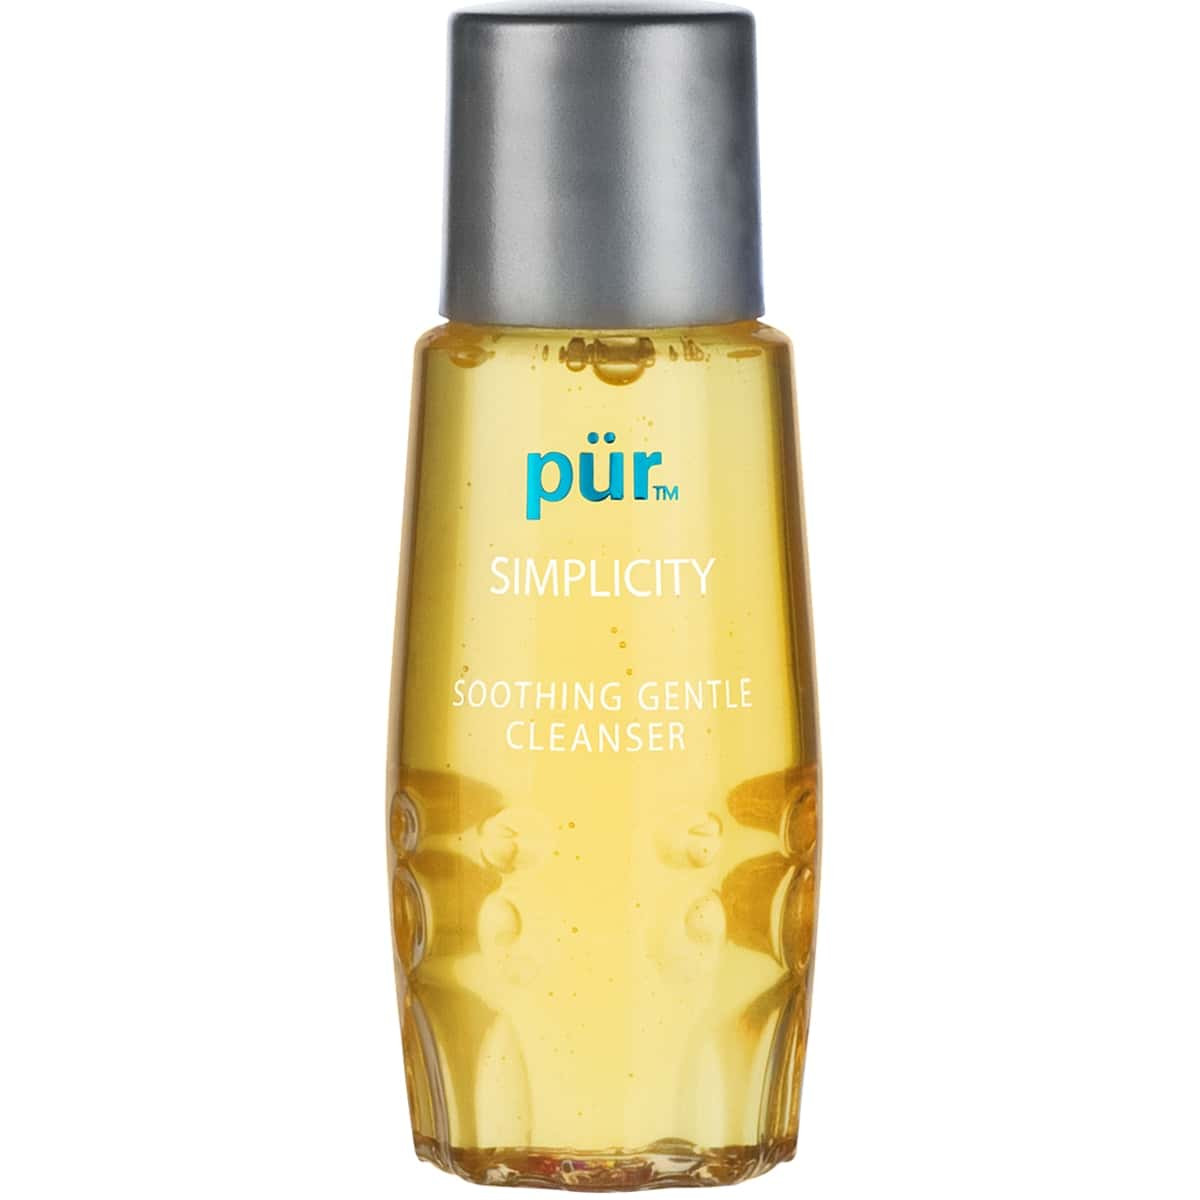 Pur - Simplicity Cleanser